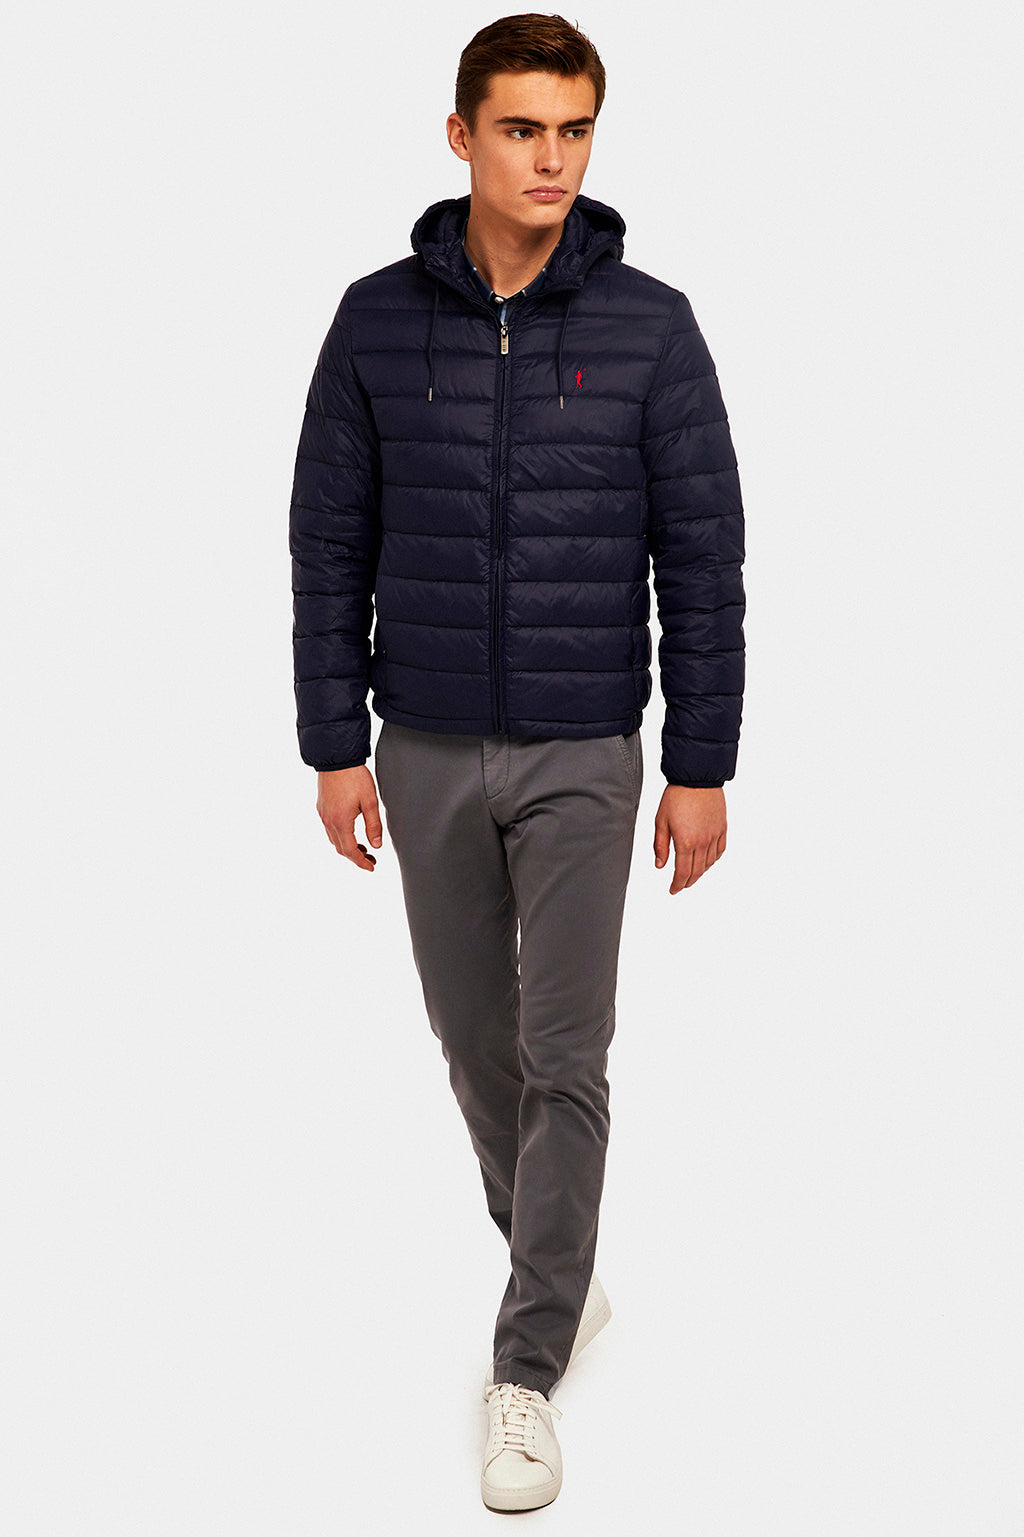 Navy blue Ultralight jacket with hood